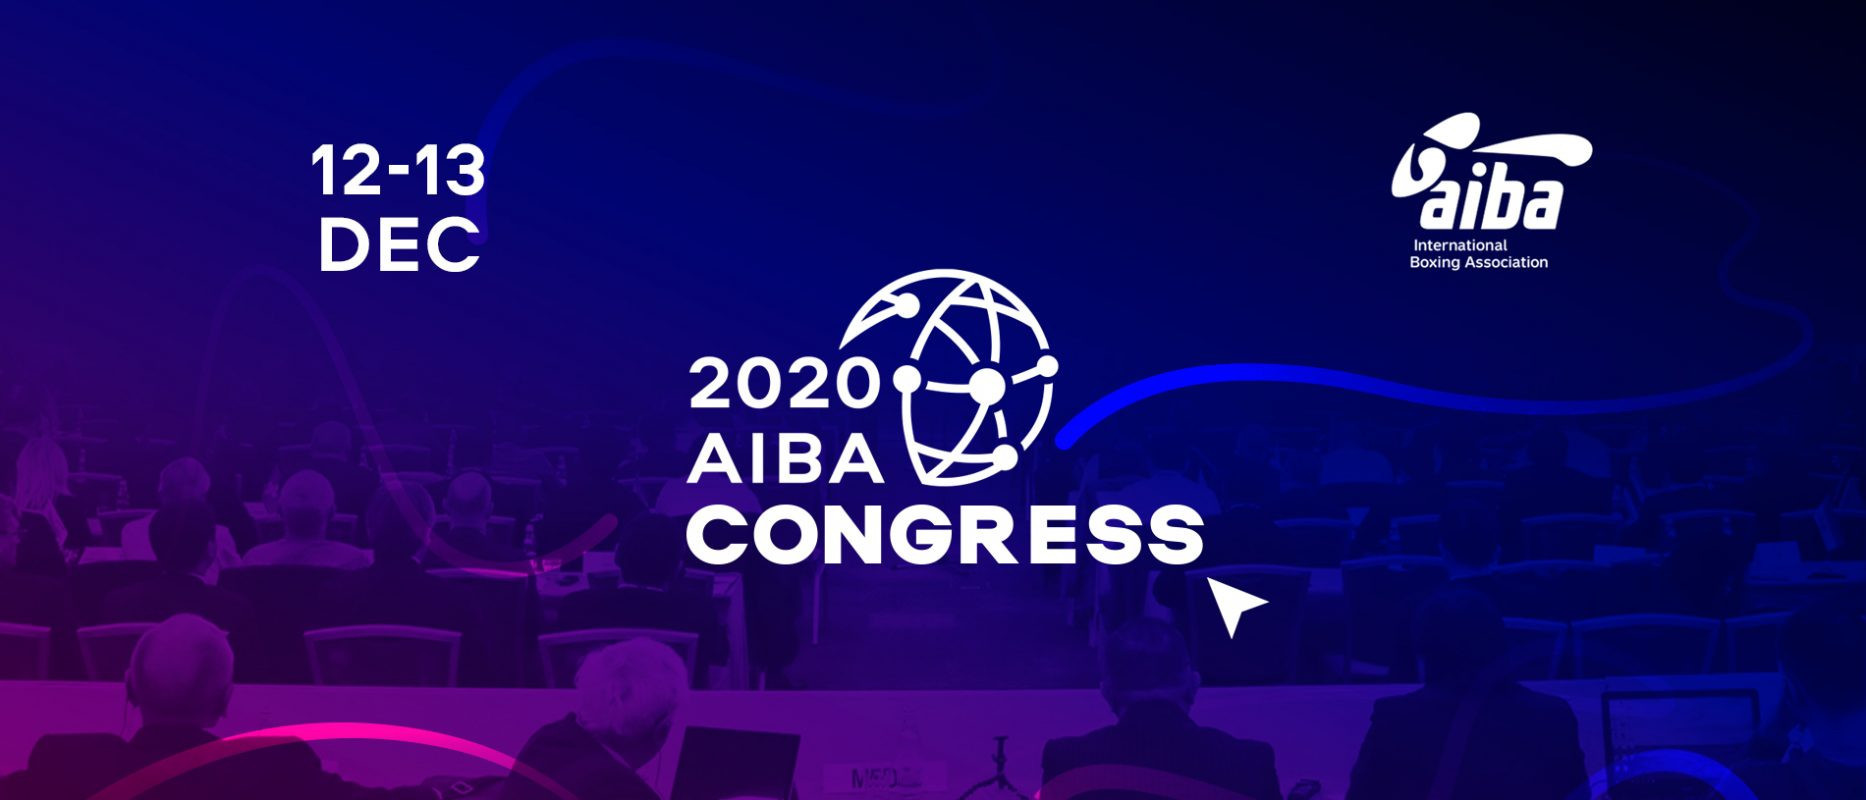 AIBA will elect a new President at the governing body's Congress later this month ©AIBA